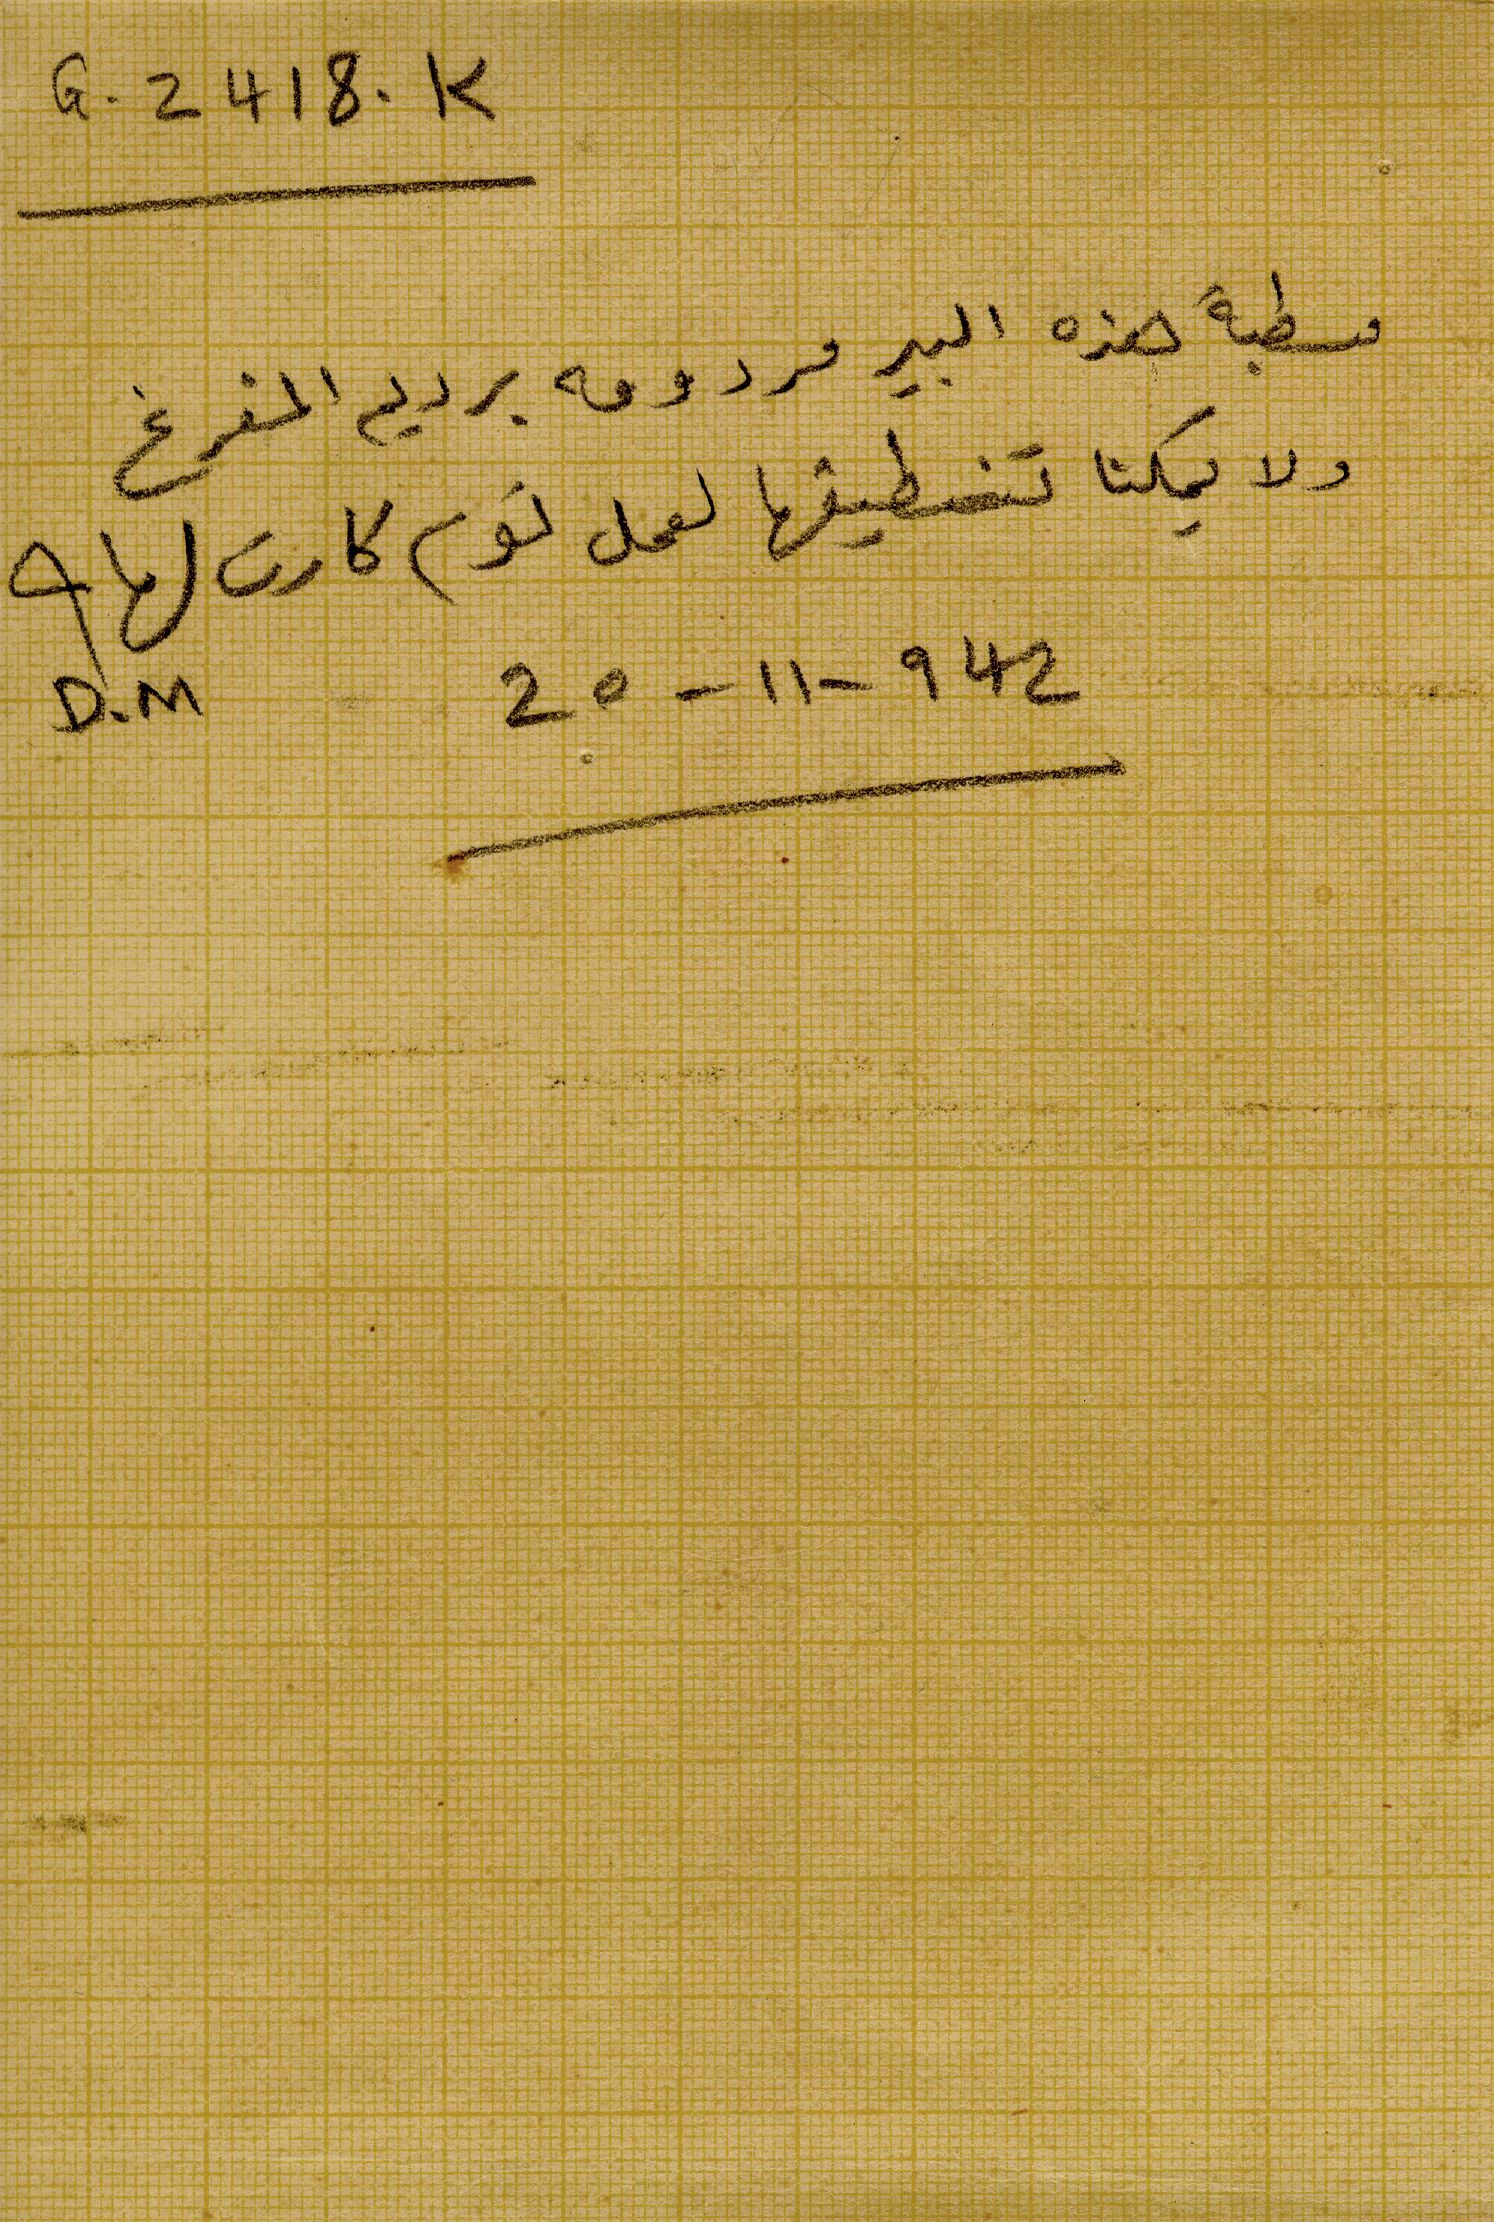 Notes: G 2418, Shaft K, notes (in Arabic)